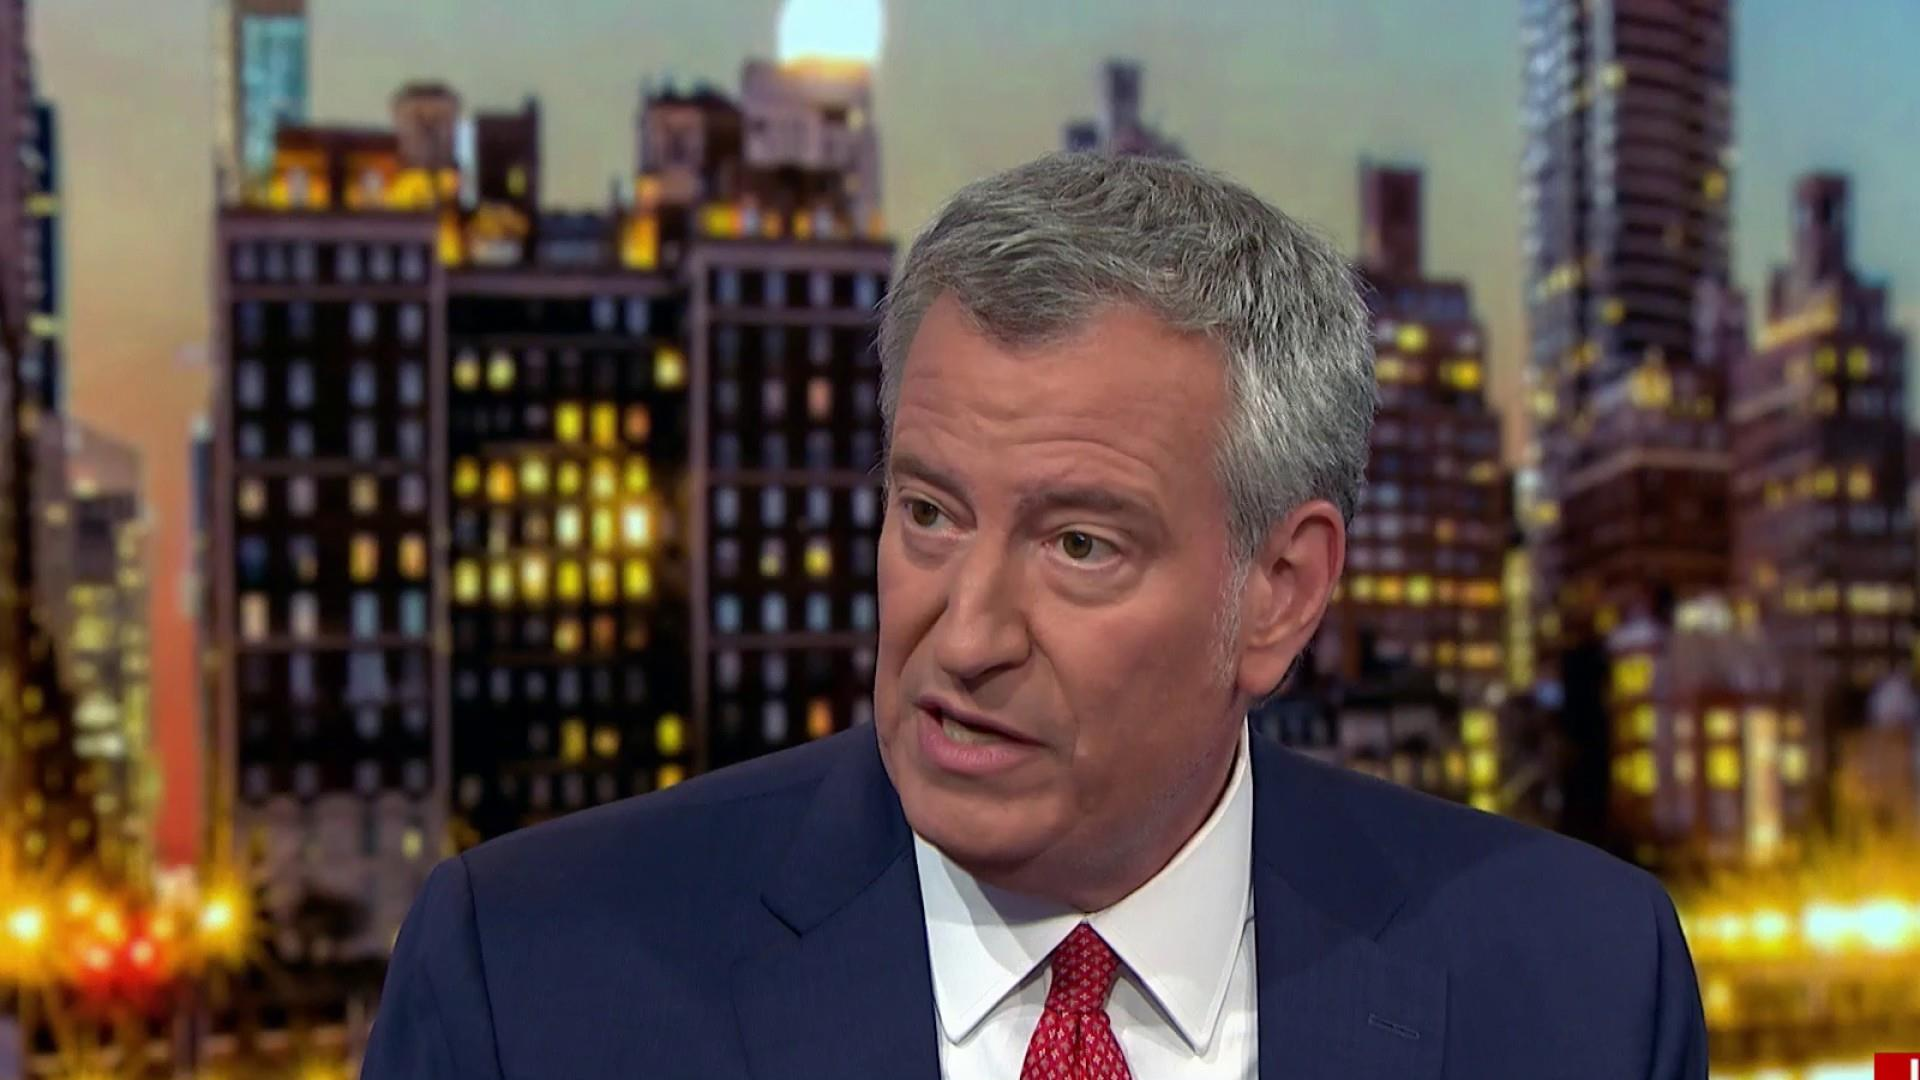 Bill de Blasio: The country's not fair right now